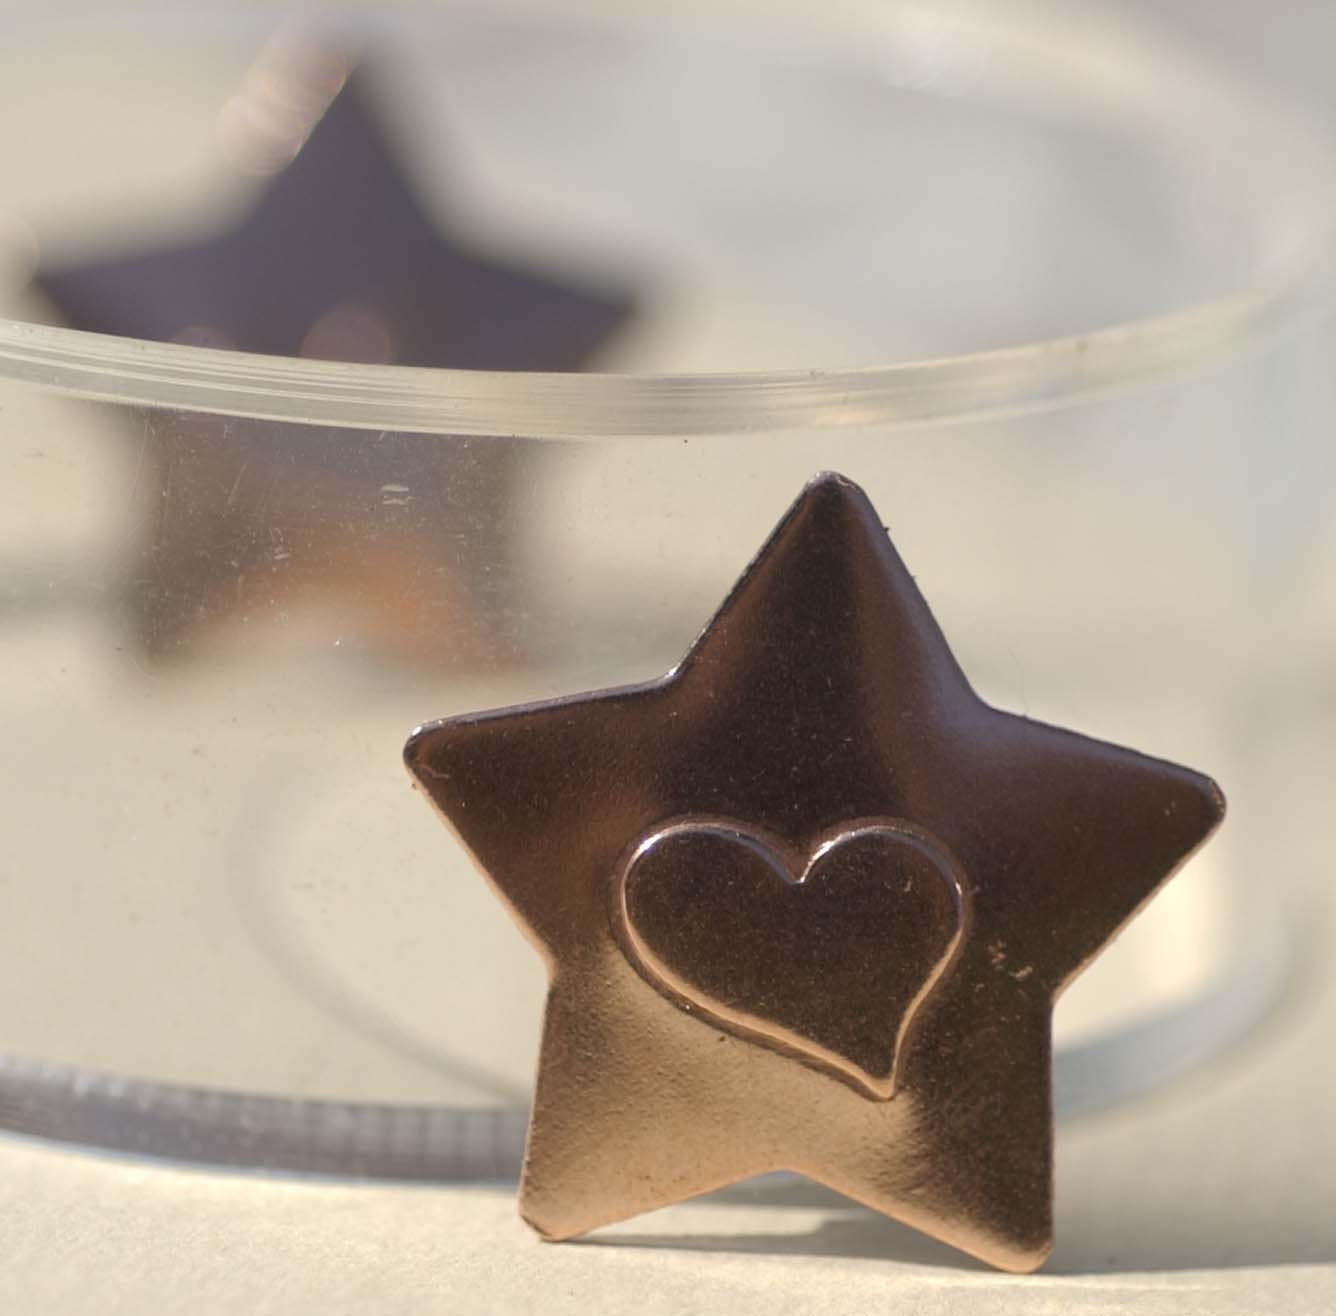 Stars with Heart Embossed Blank Cutout for Enameling Stamping Texturing Metalworking Jewelry Making Blanks - 4 pieces